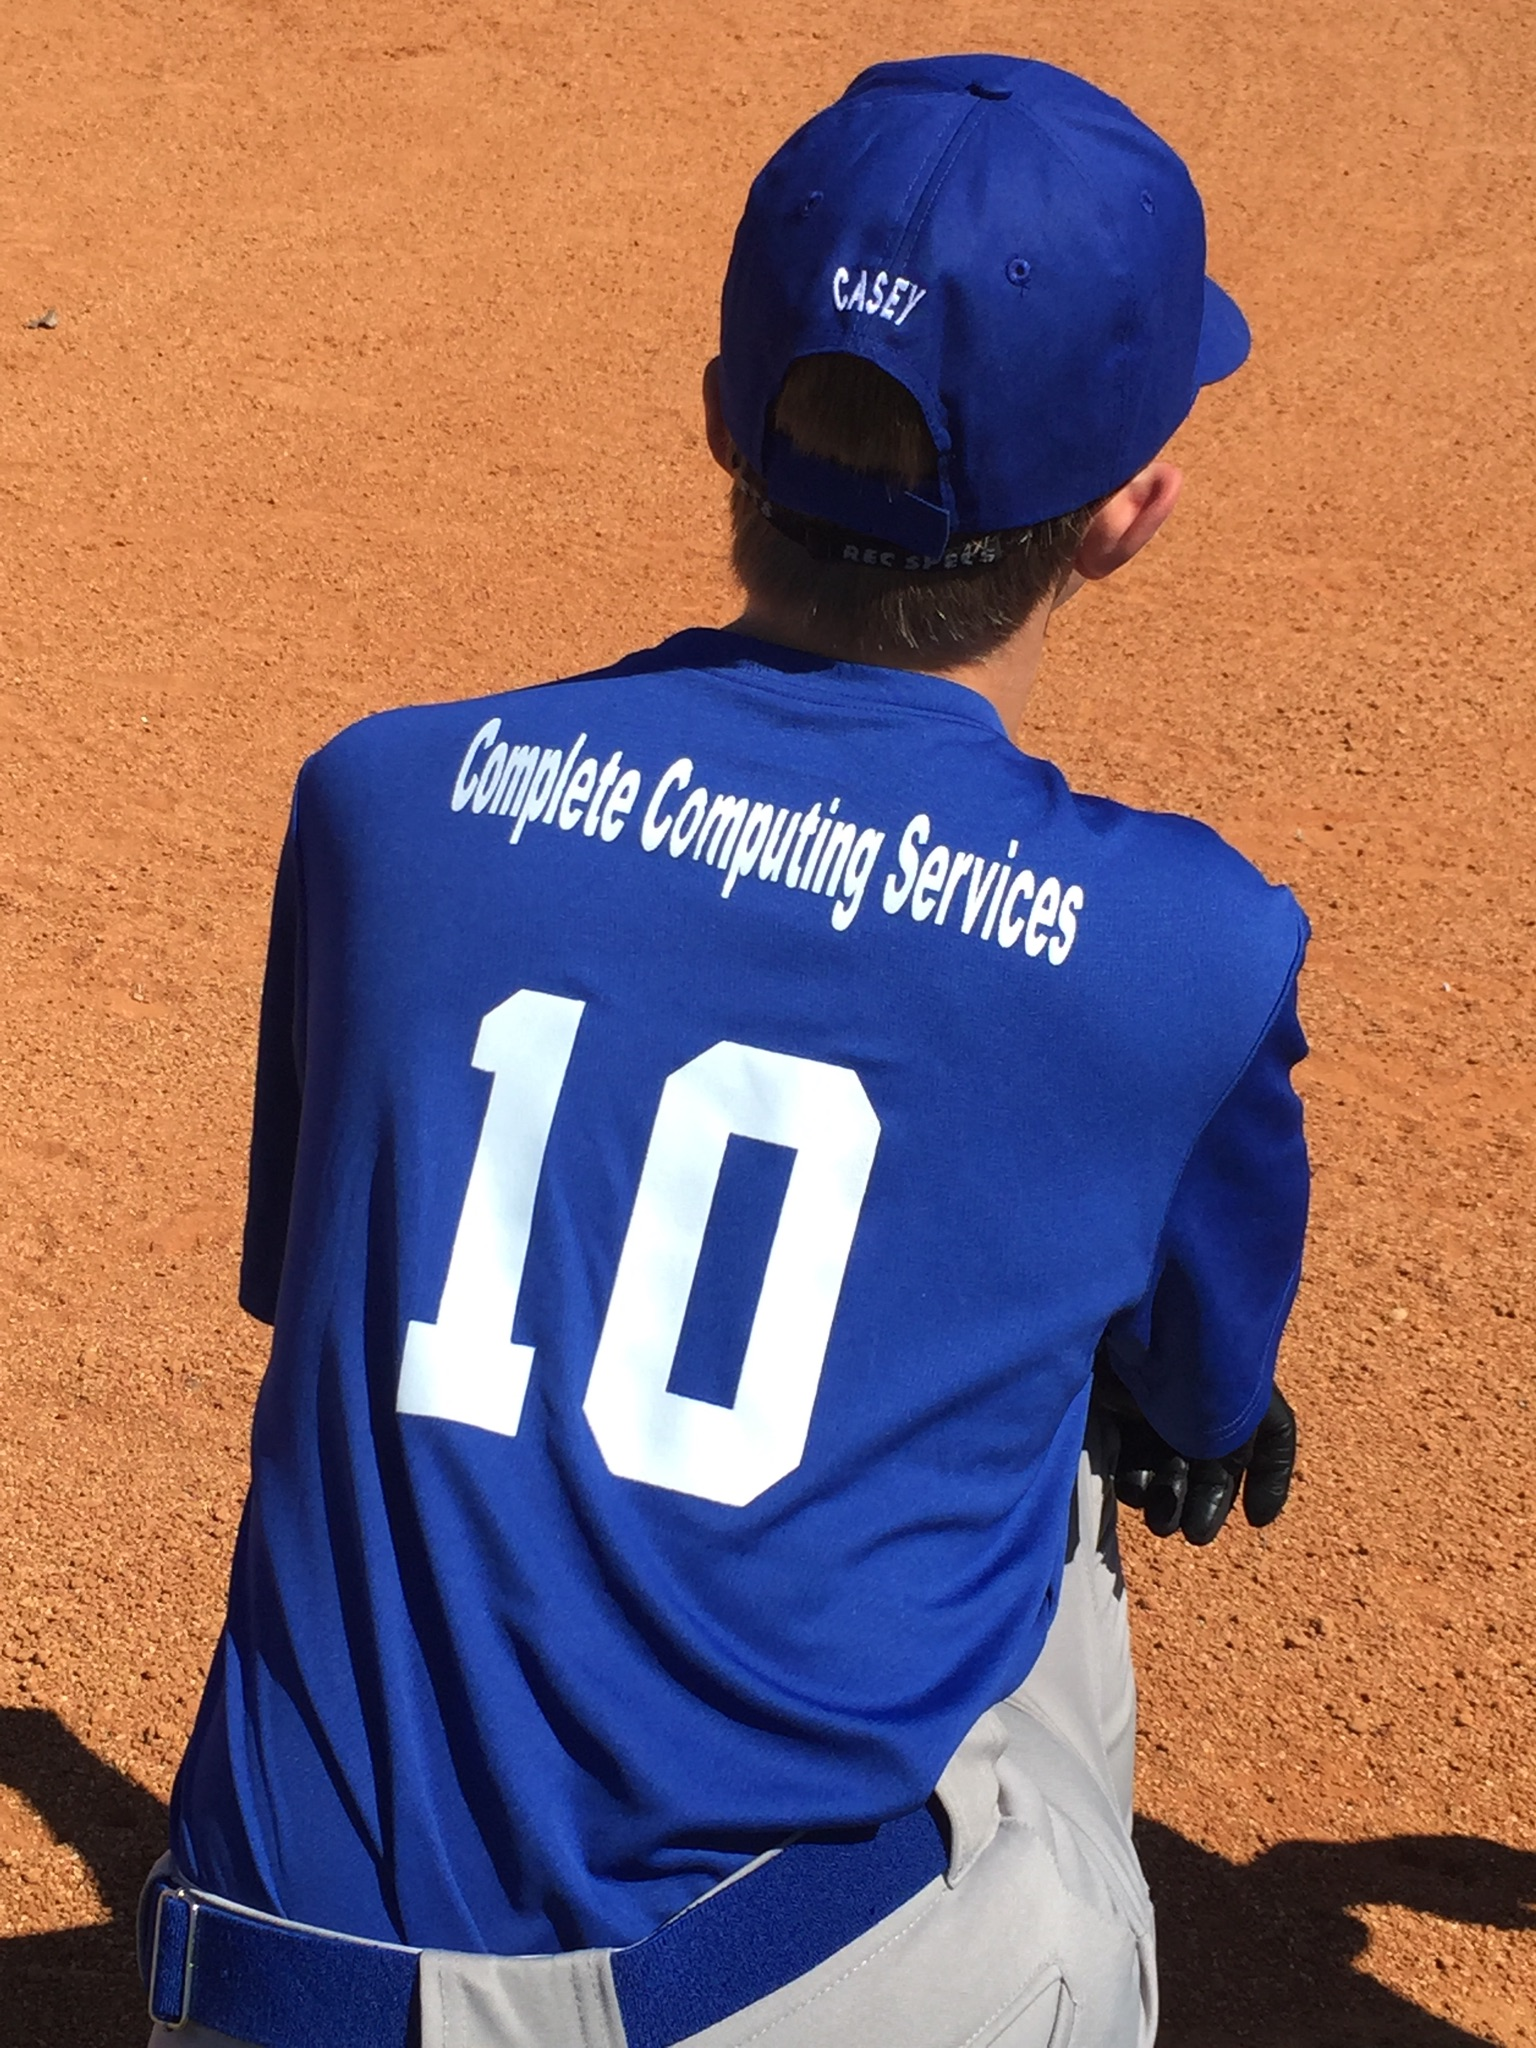 CCS sponsors the TSA Blue Jays baseball team